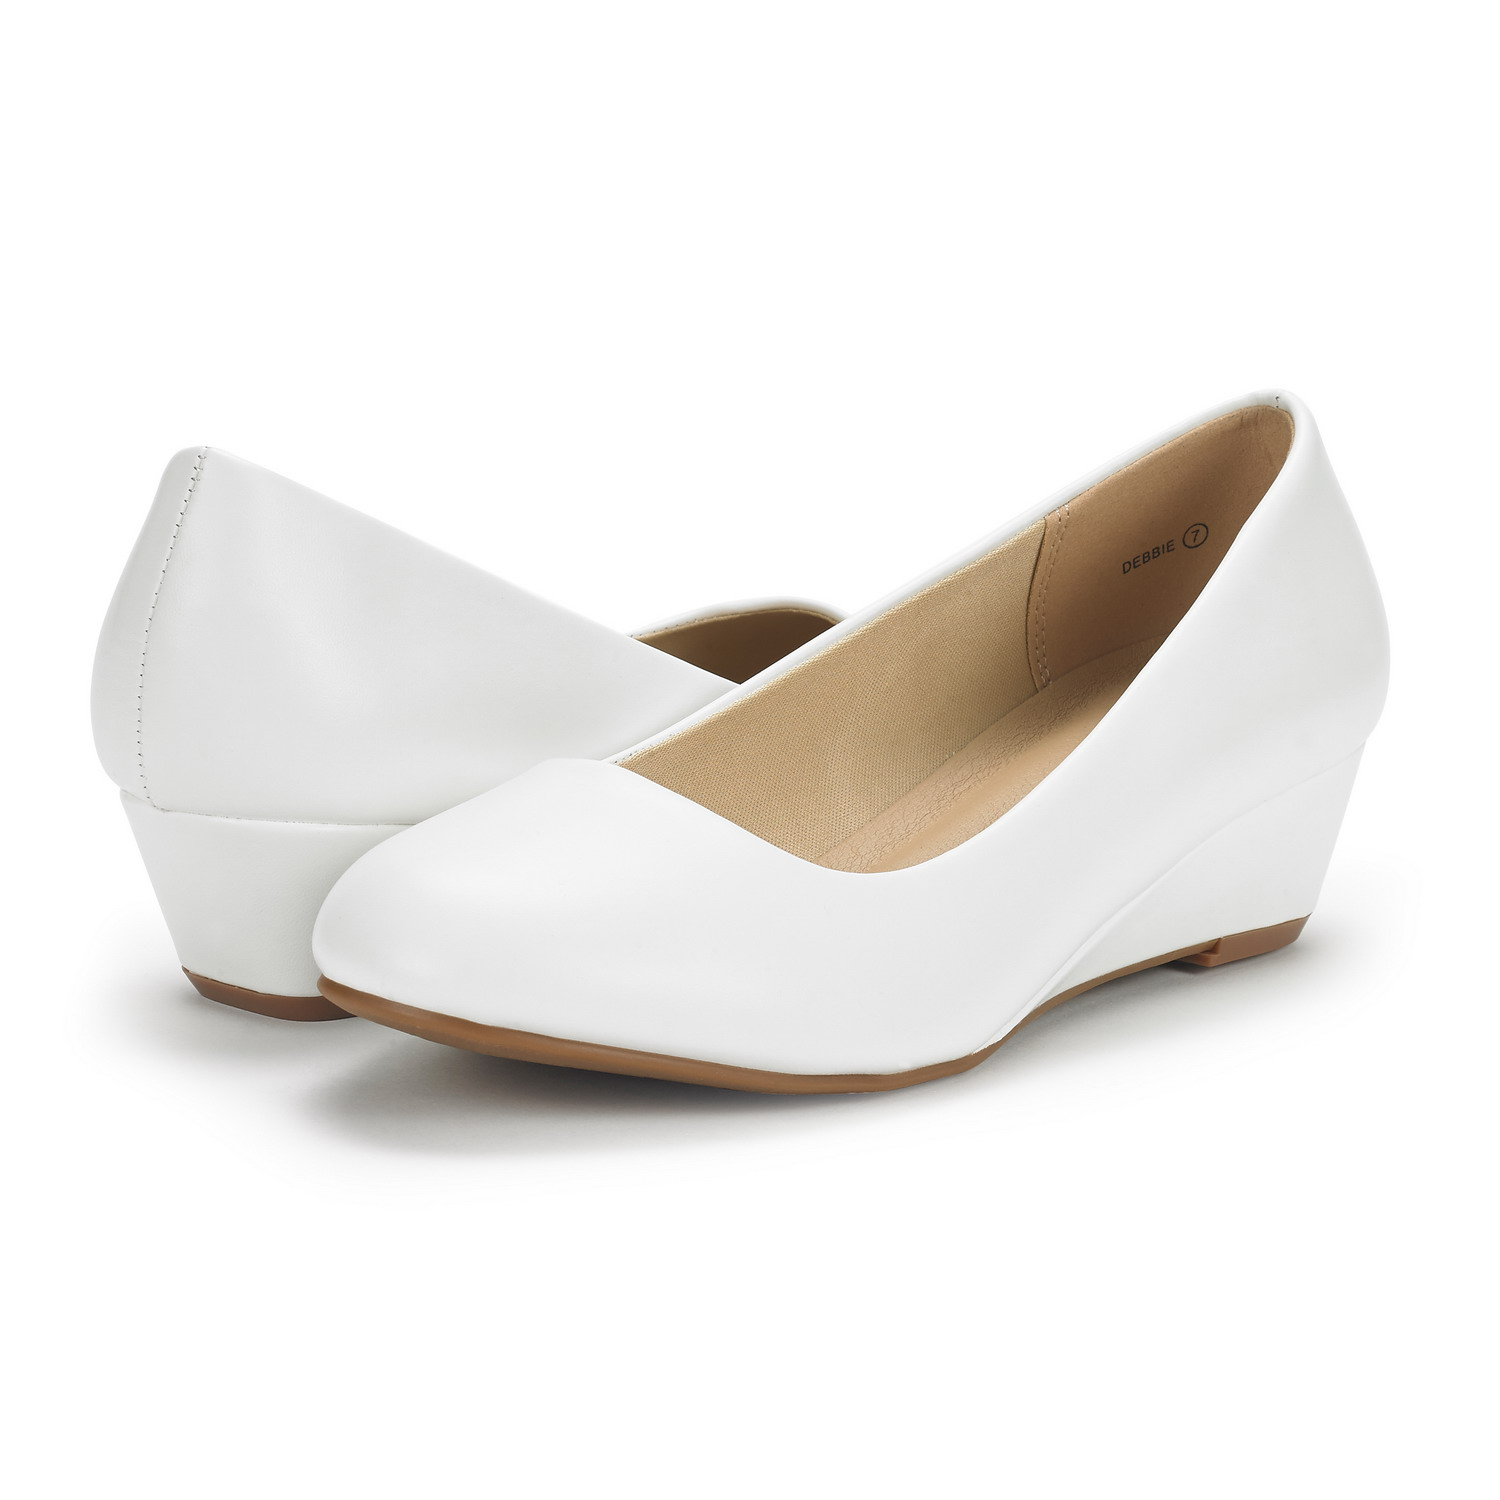 DREAM-PAIRS-Women-039-s-Mid-Wedge-Heel-Shoes-Slip-On-Comfort-Dress-Shoes-Suede-PU thumbnail 45